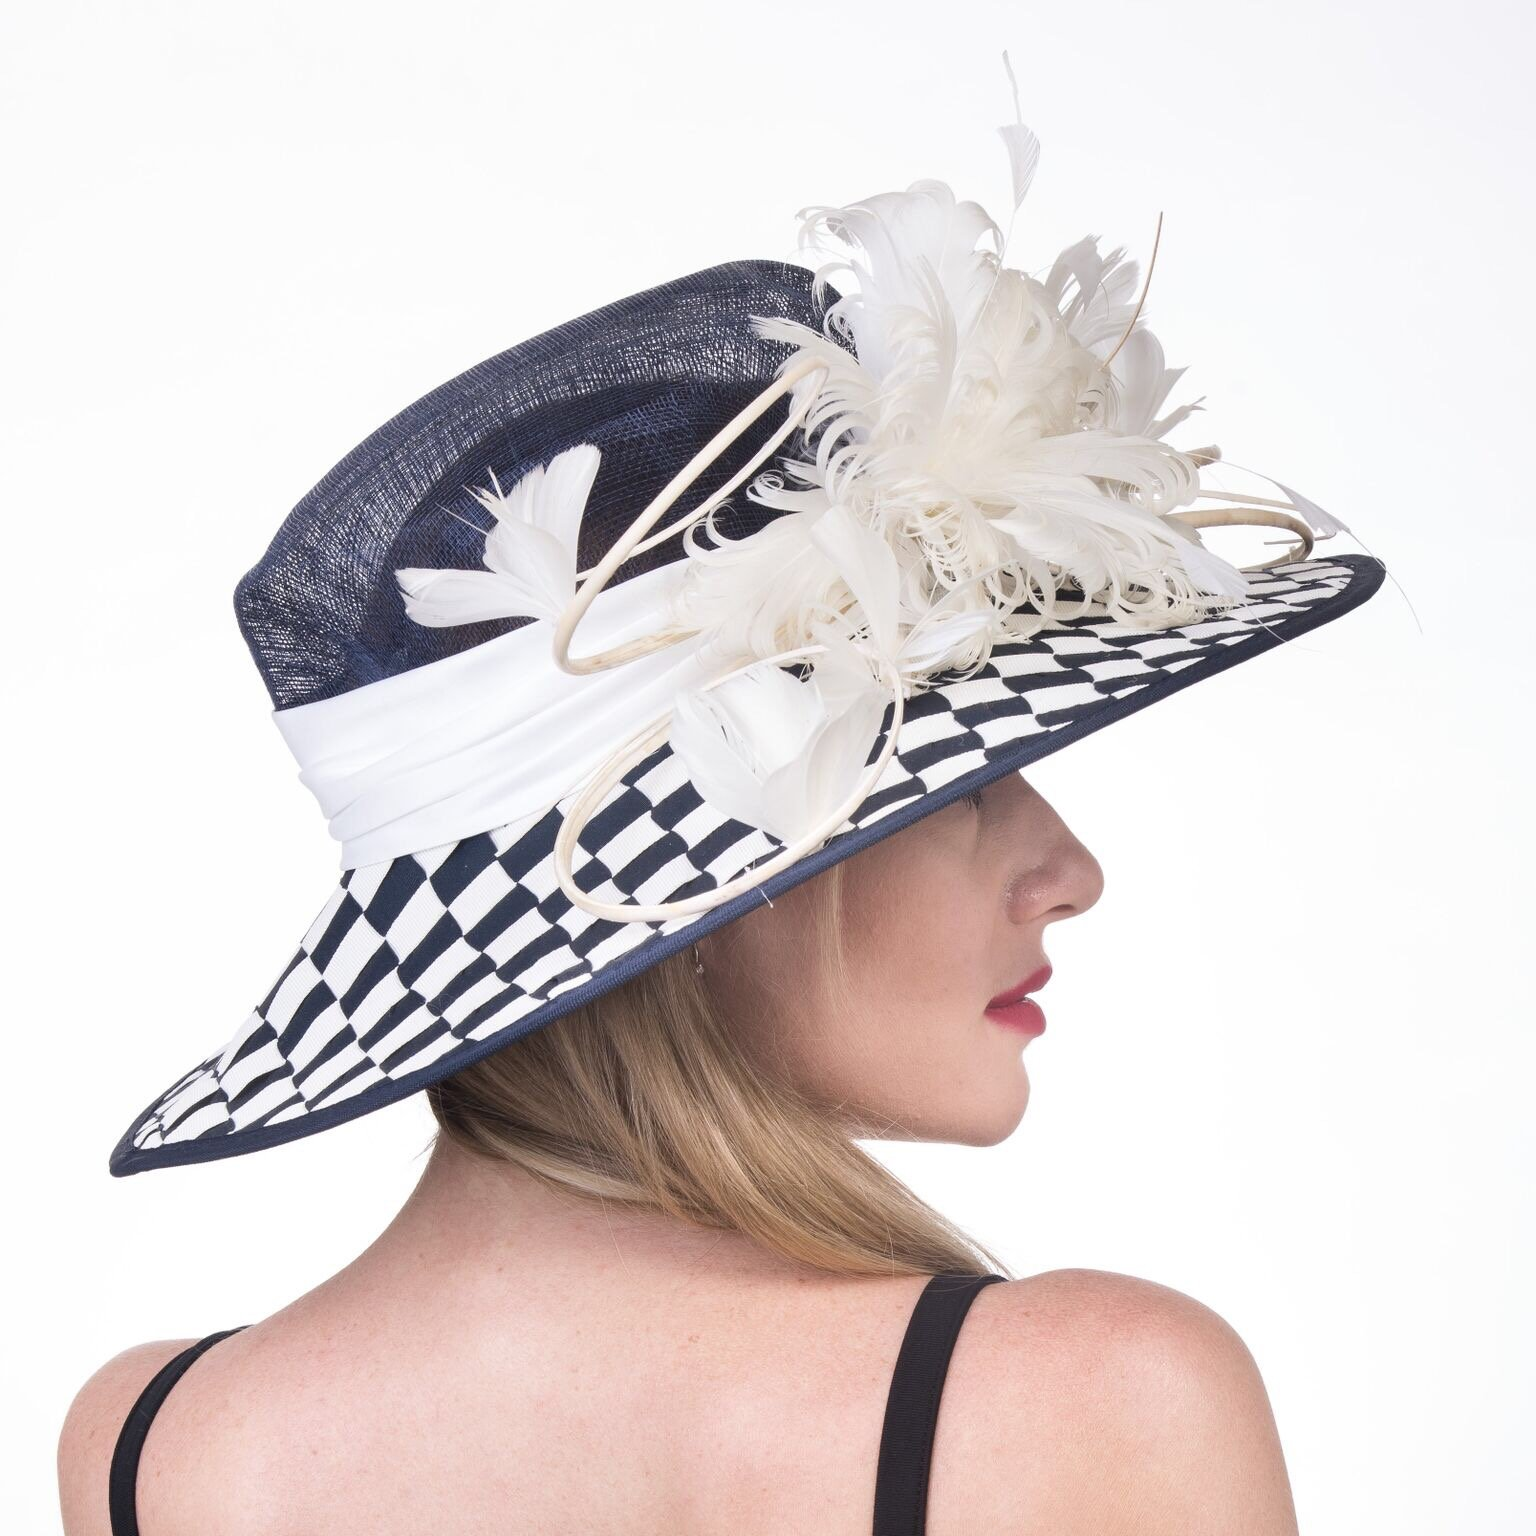 Gorgeous Wide Brim Sinamay Floral Feathers Derby Dress Hat Navy Blue w White by ray&daniel (Image #4)